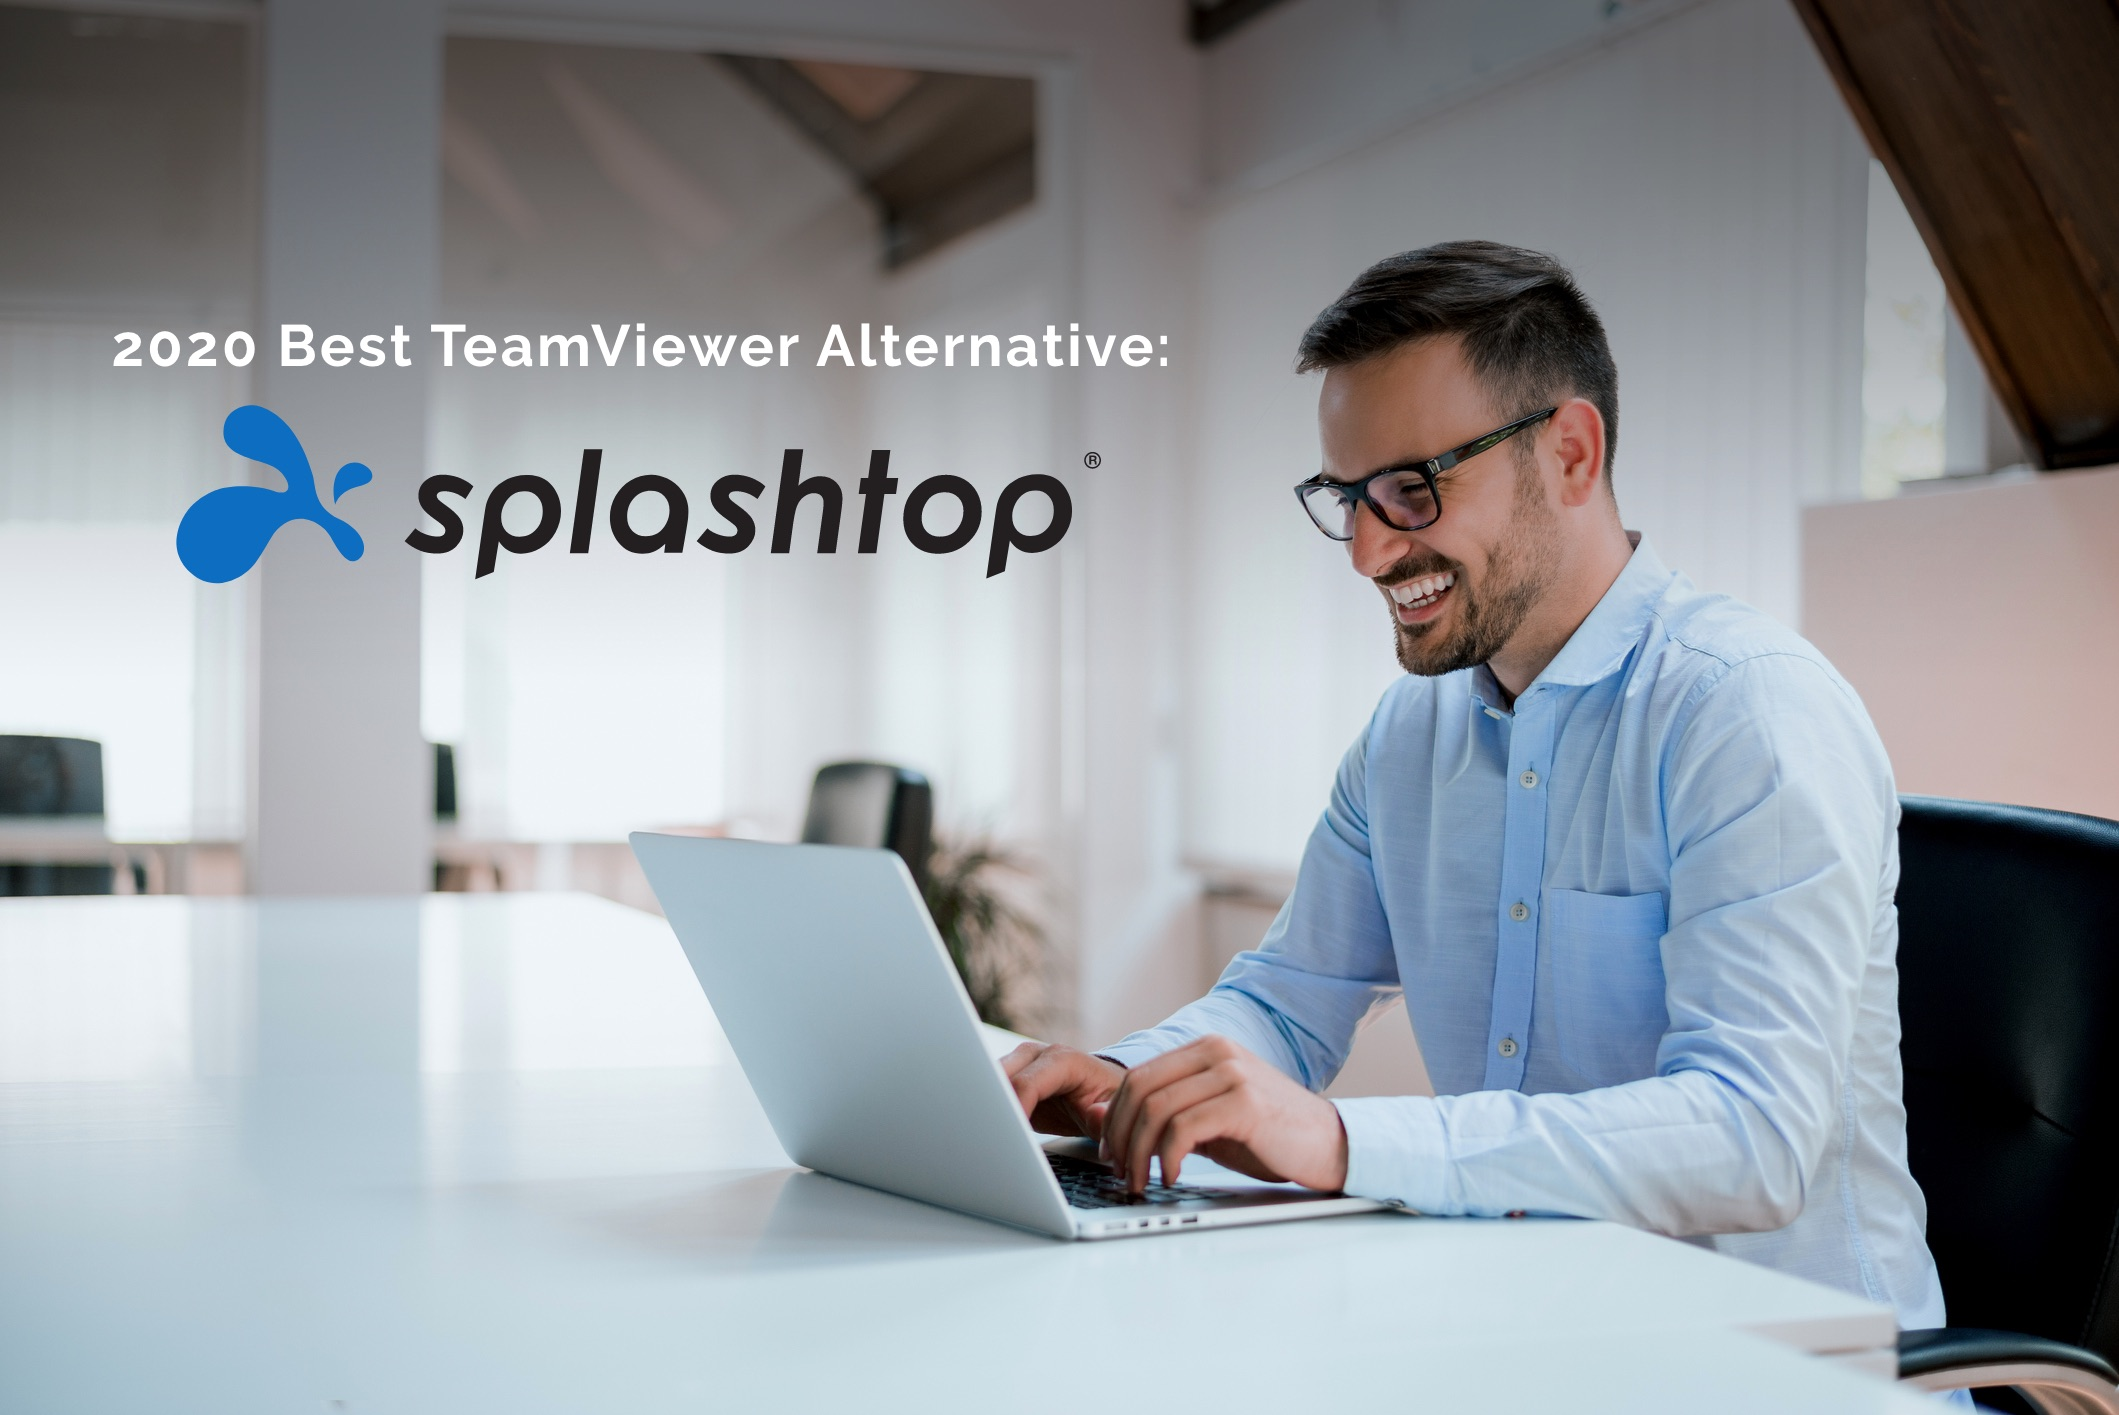 Best TeamViewer Alternative 2020